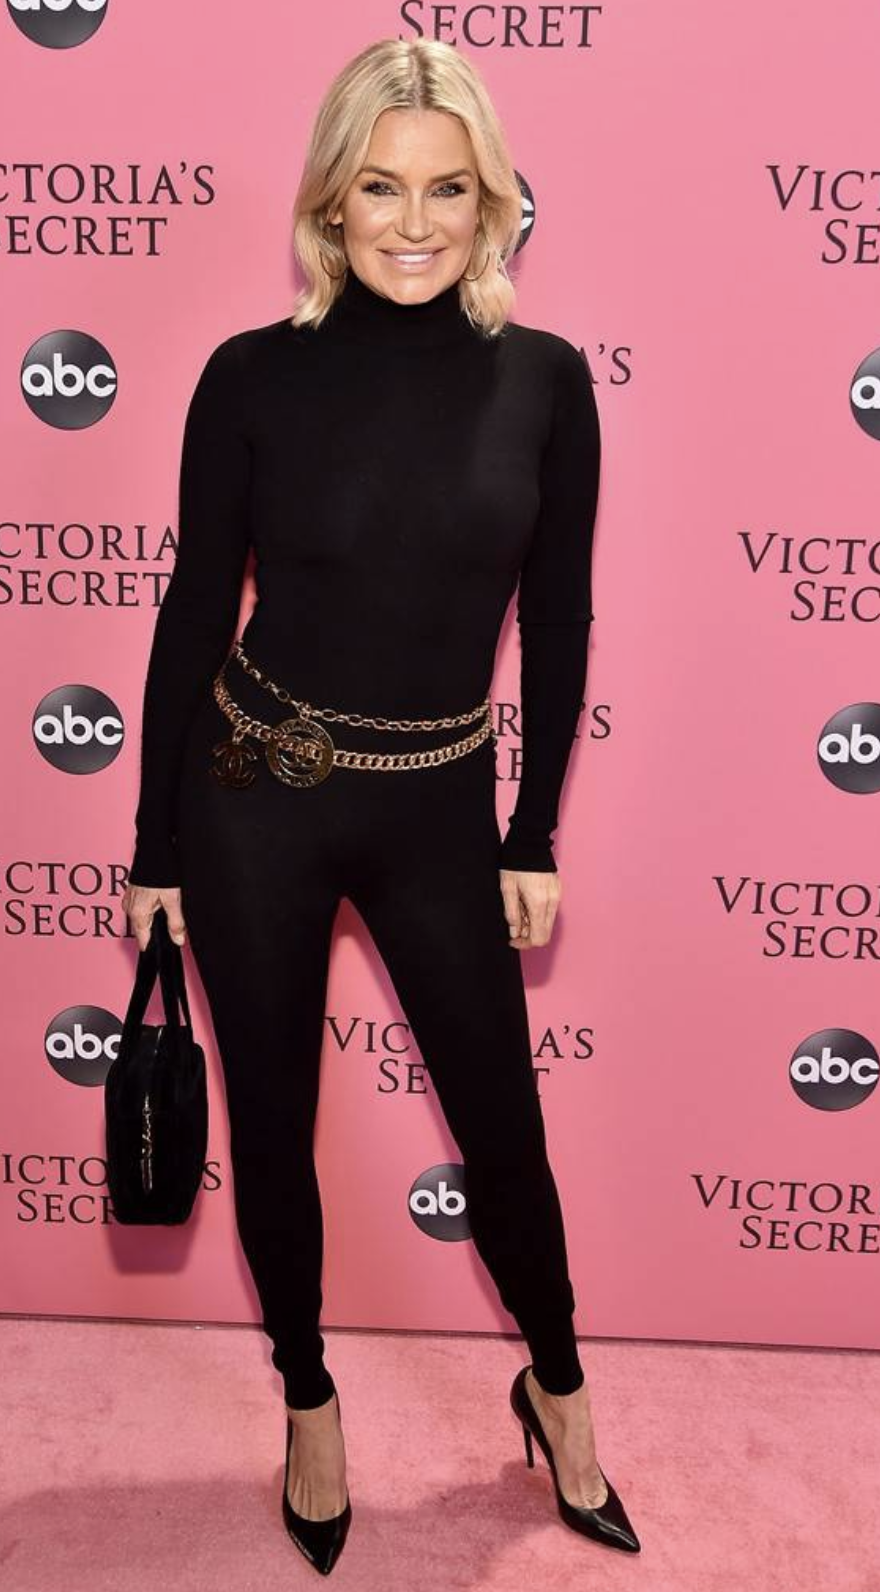 Yolanda Hadid - Free of Breast Implants and Living a Great Life at Age 55